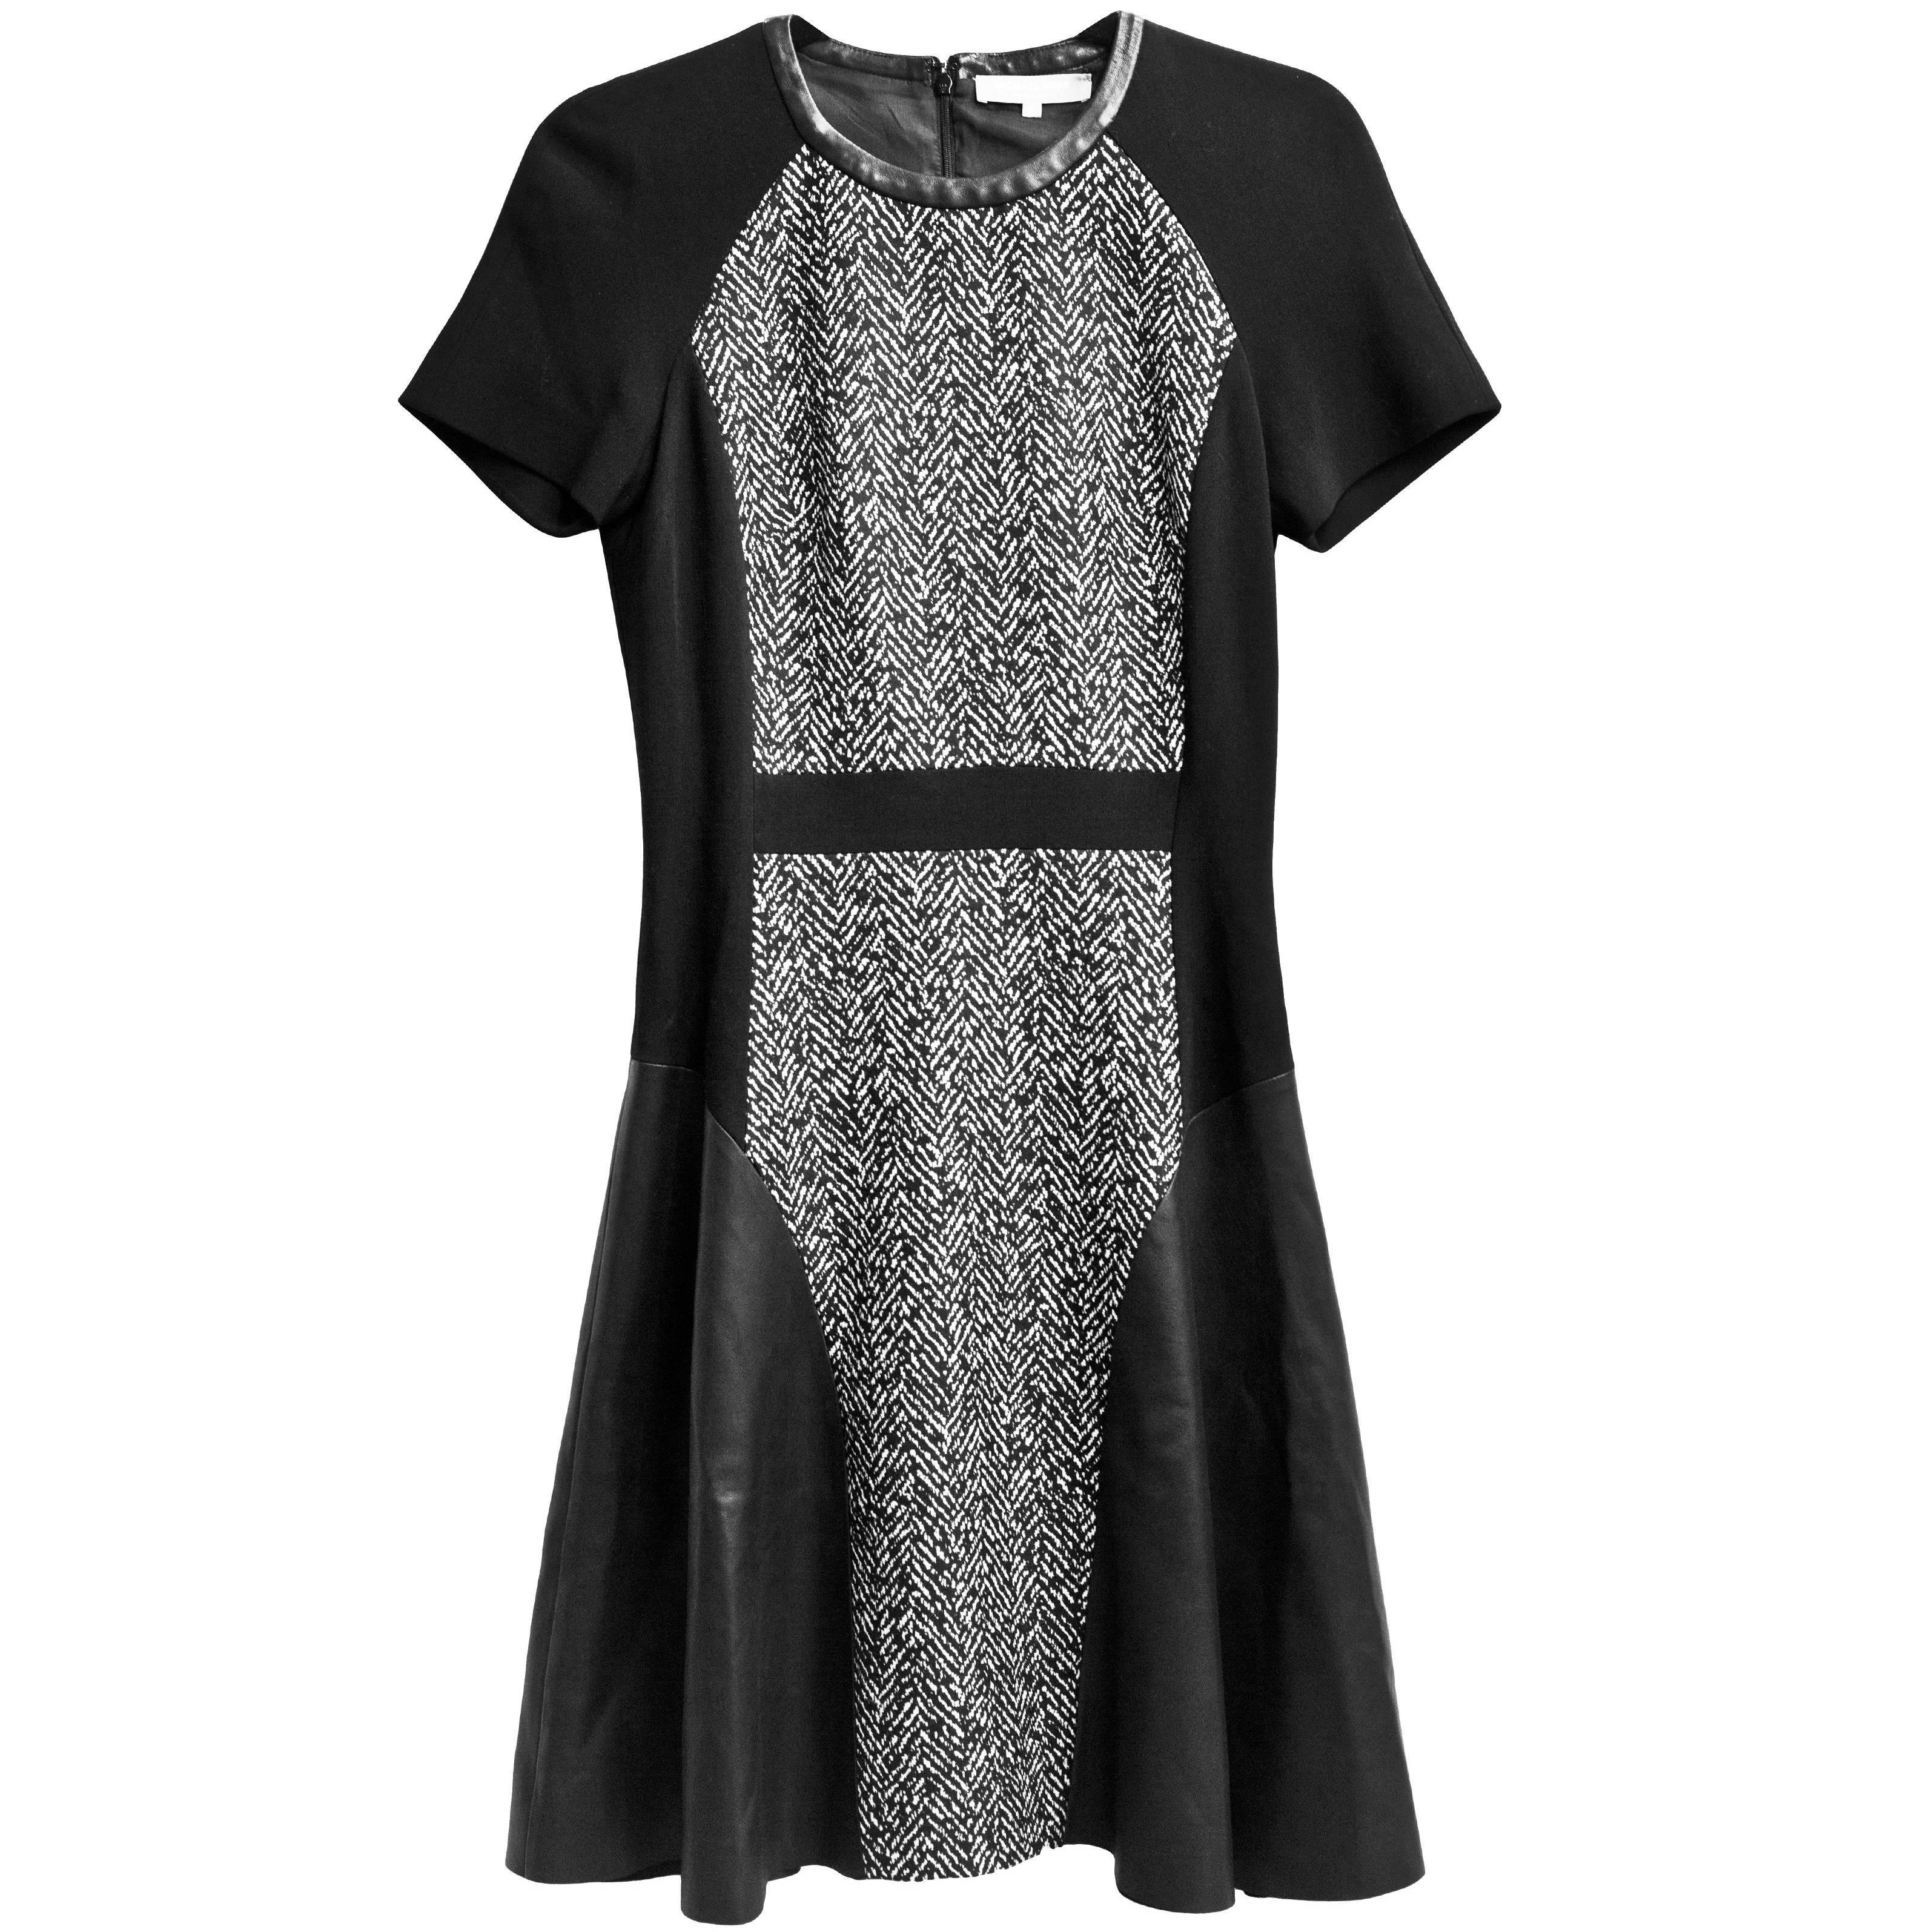 Michael Kors Black & White Wool Herringbone Print & Leather Dress  ...